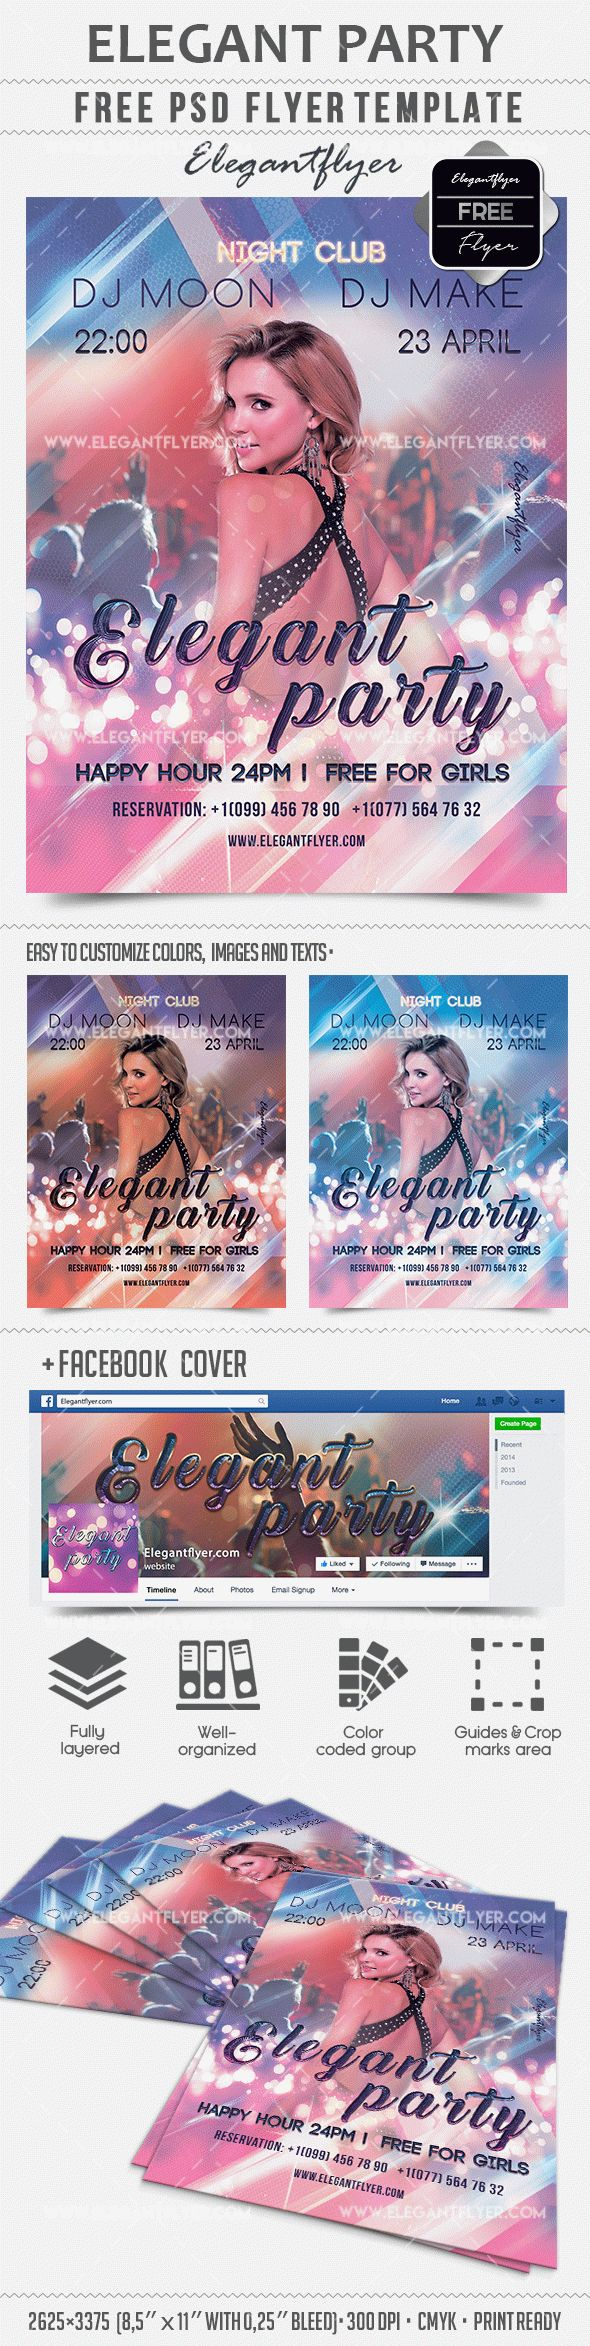 Elegant Party – Free PSD Template + Facebook cover